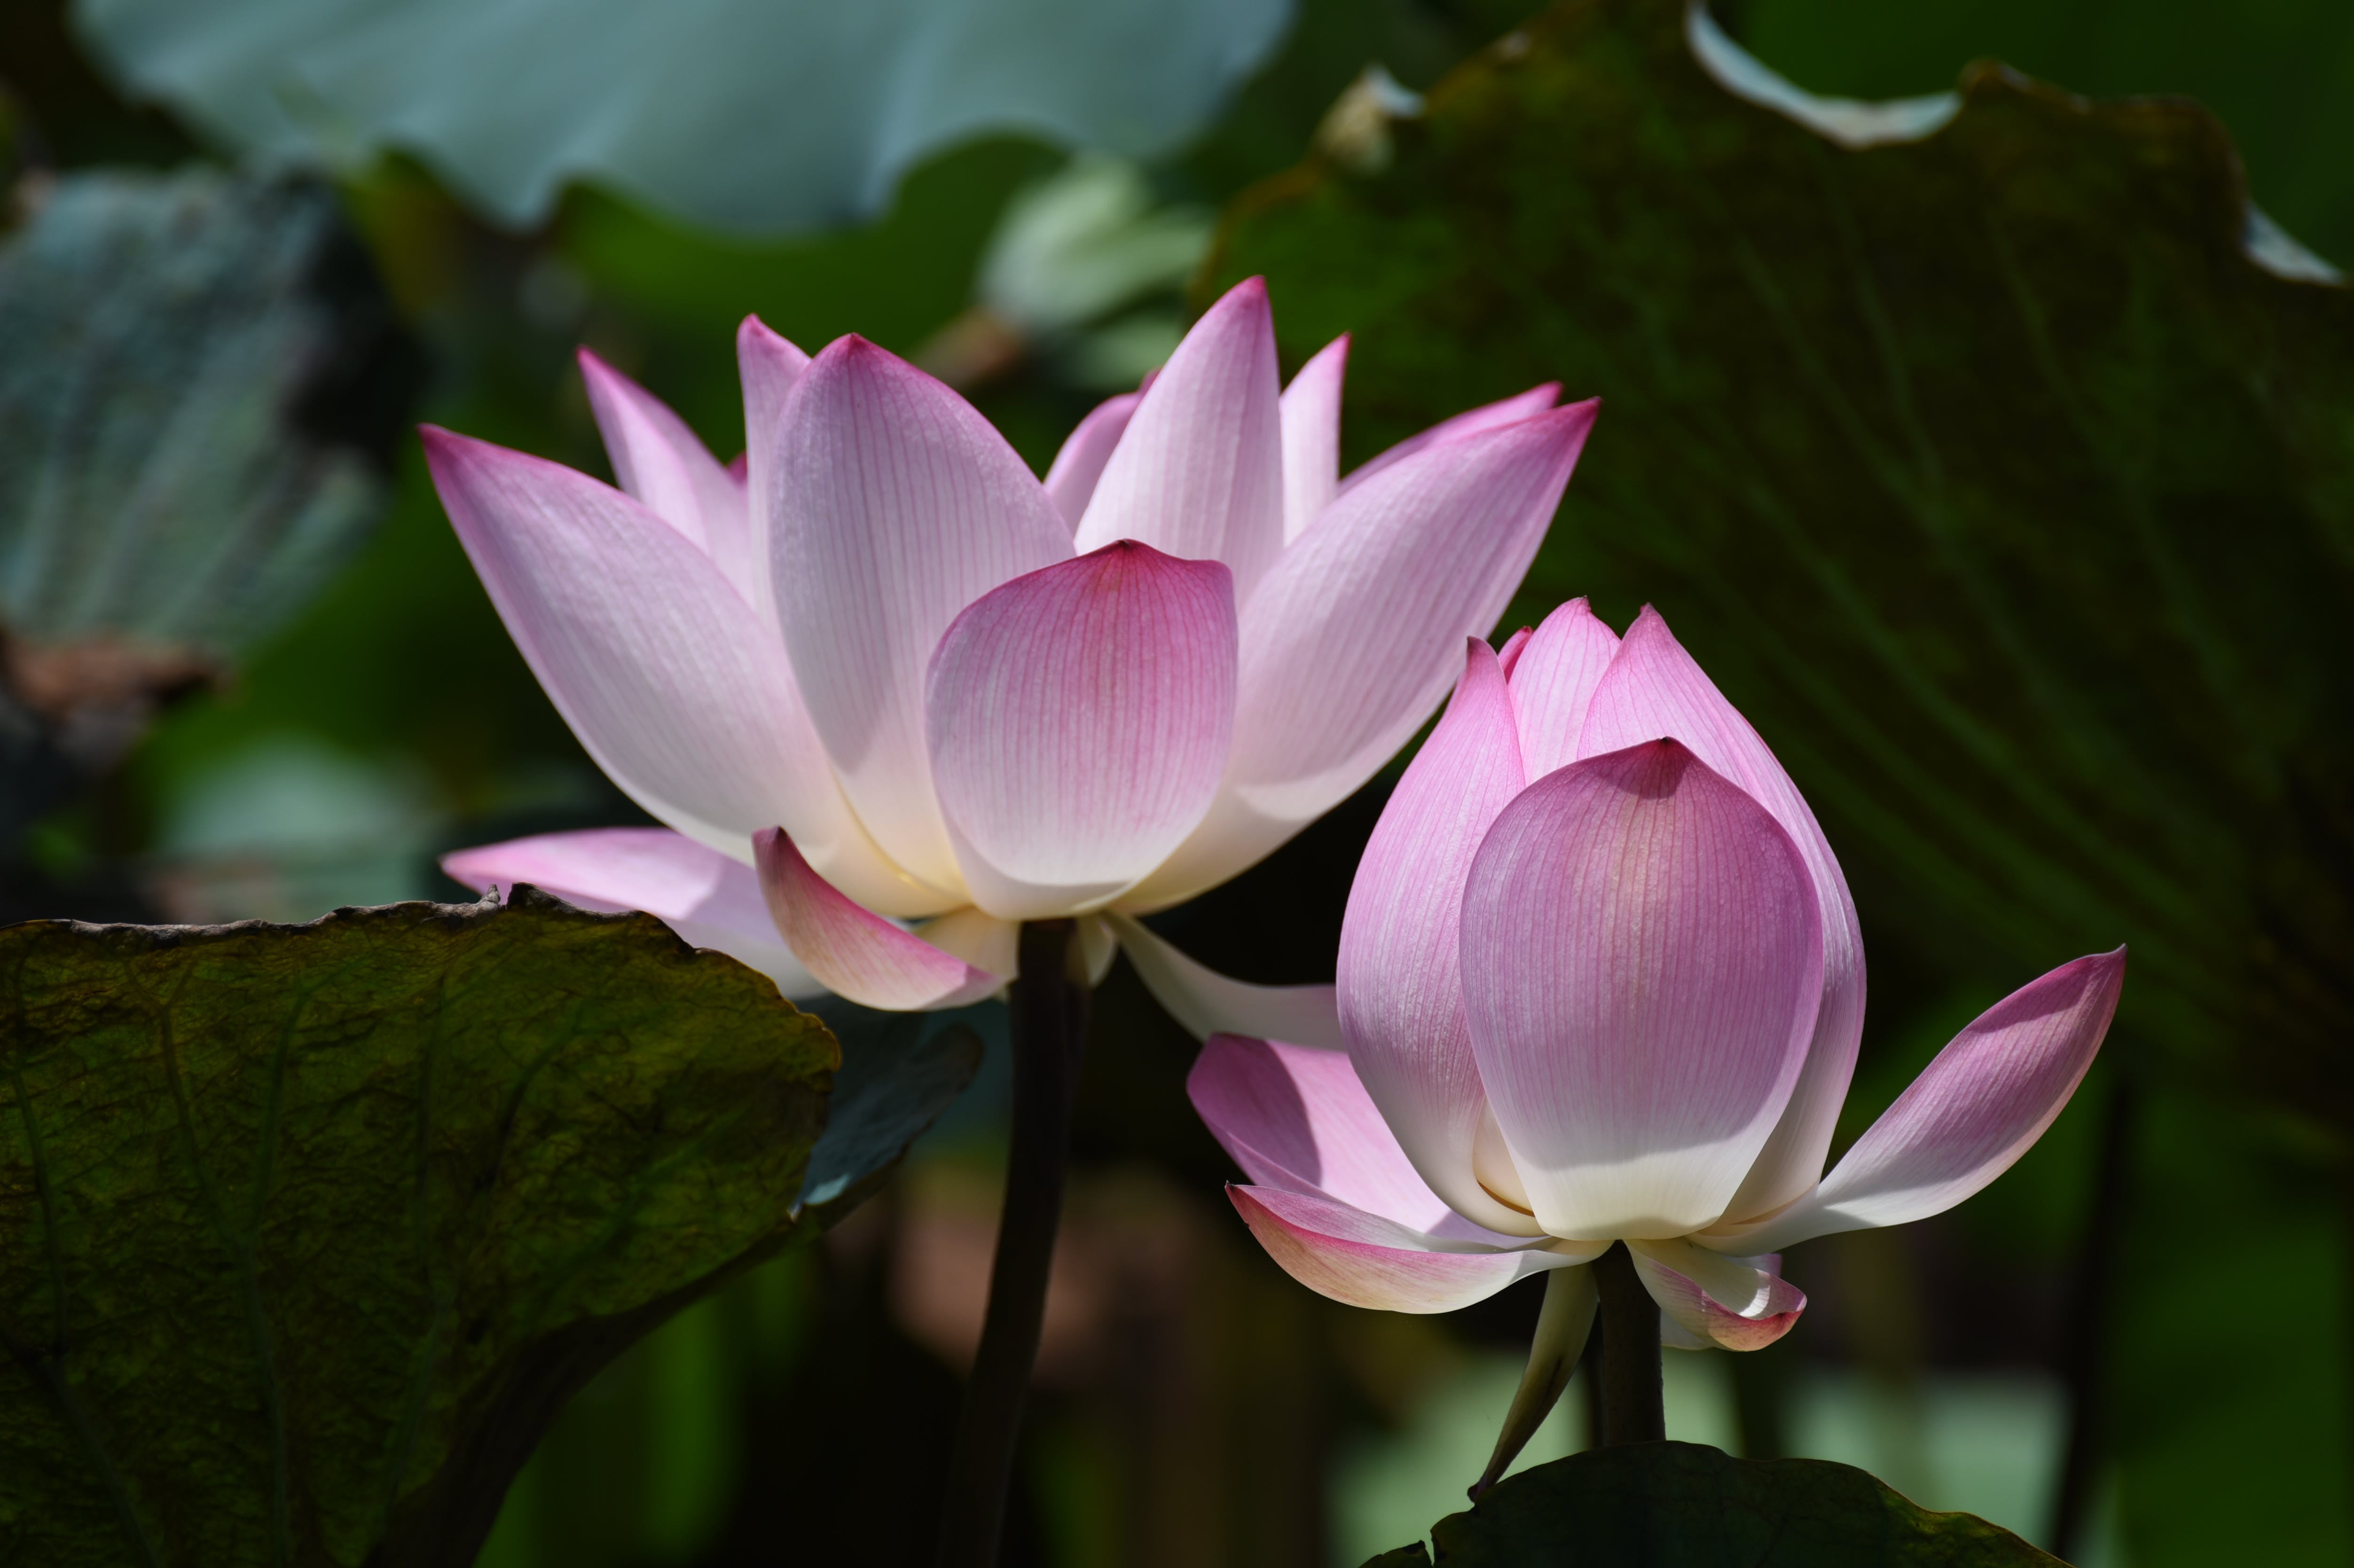 Photography of Lotus Flowers in Bloom